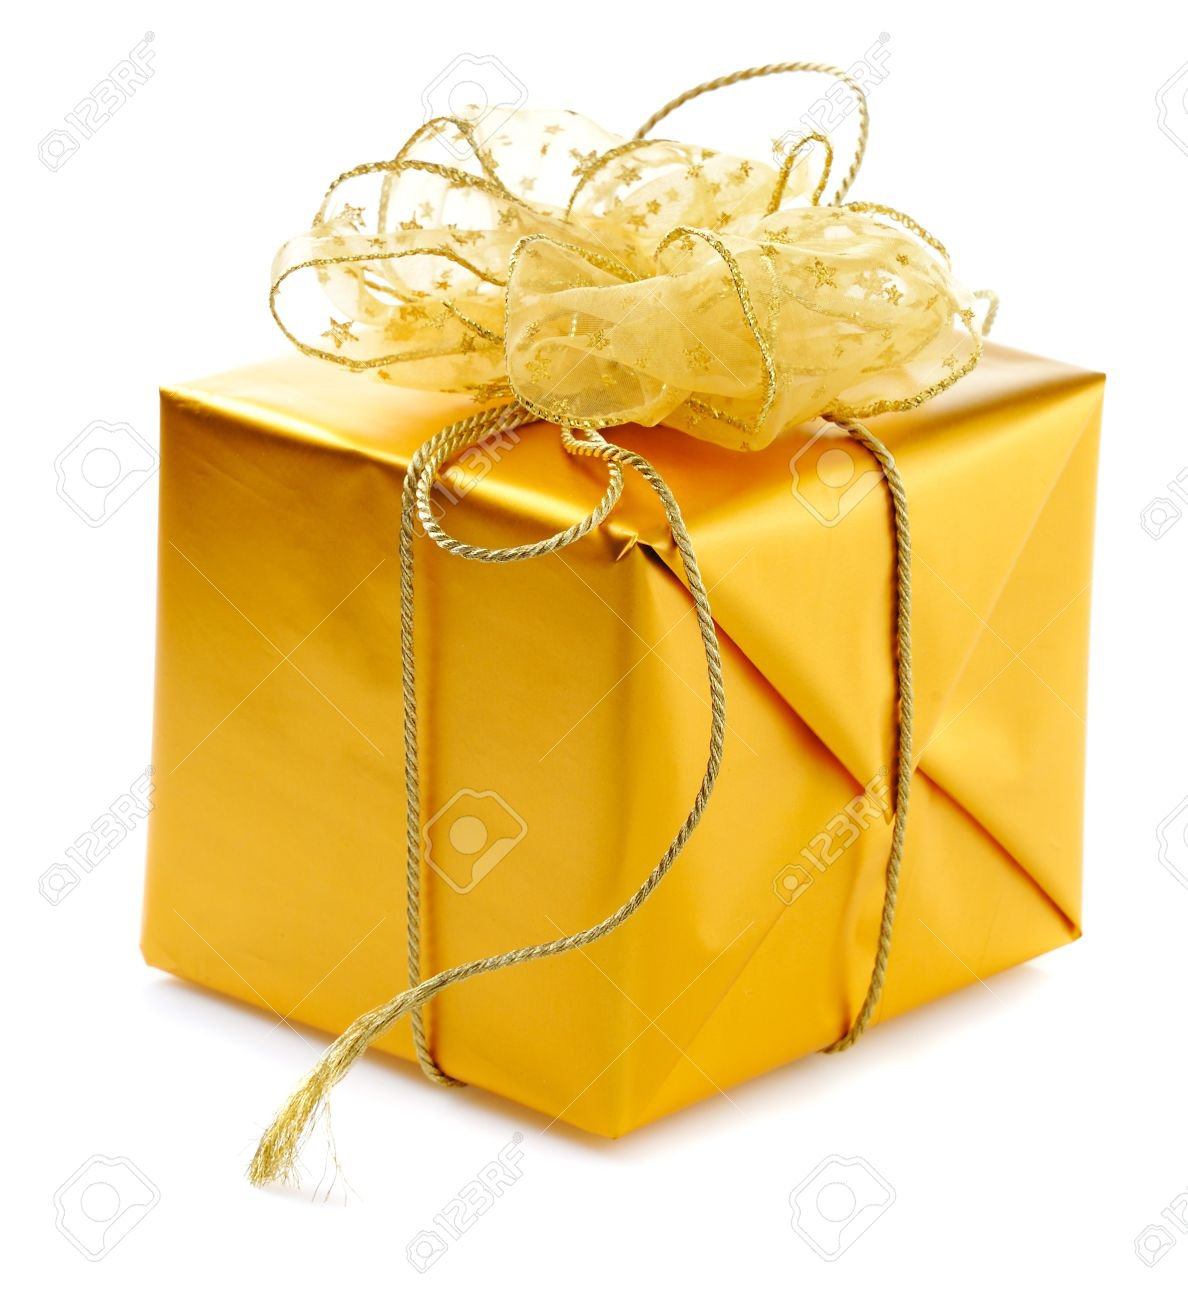 8224210-gold-gift-box-with-golden-ribbons-and-bow-isolated-on-white-background.jpg (1188×1300)